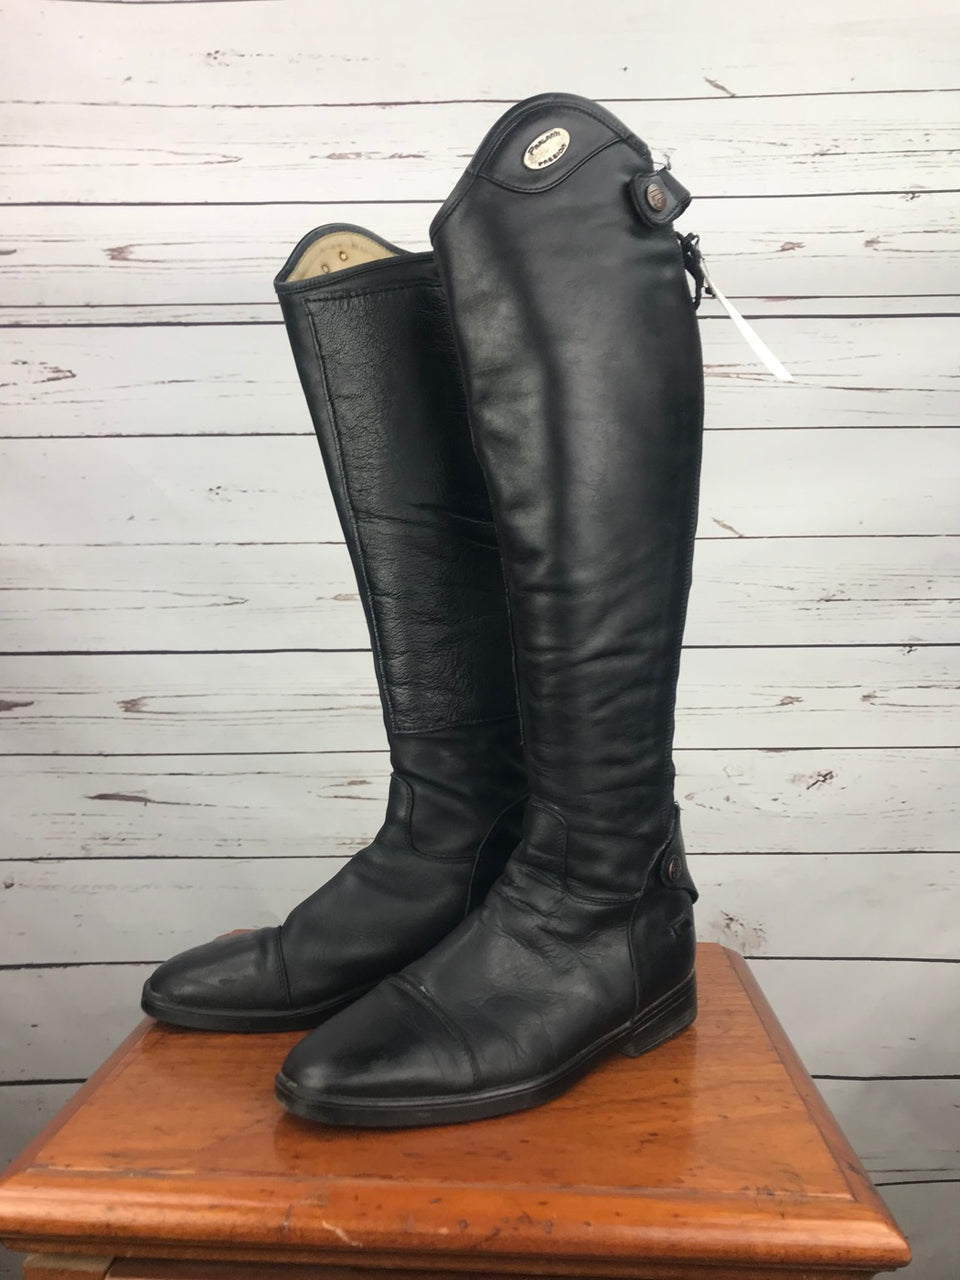 Parlanti Denver Boots in Black - EU 38 (Approx. L+)